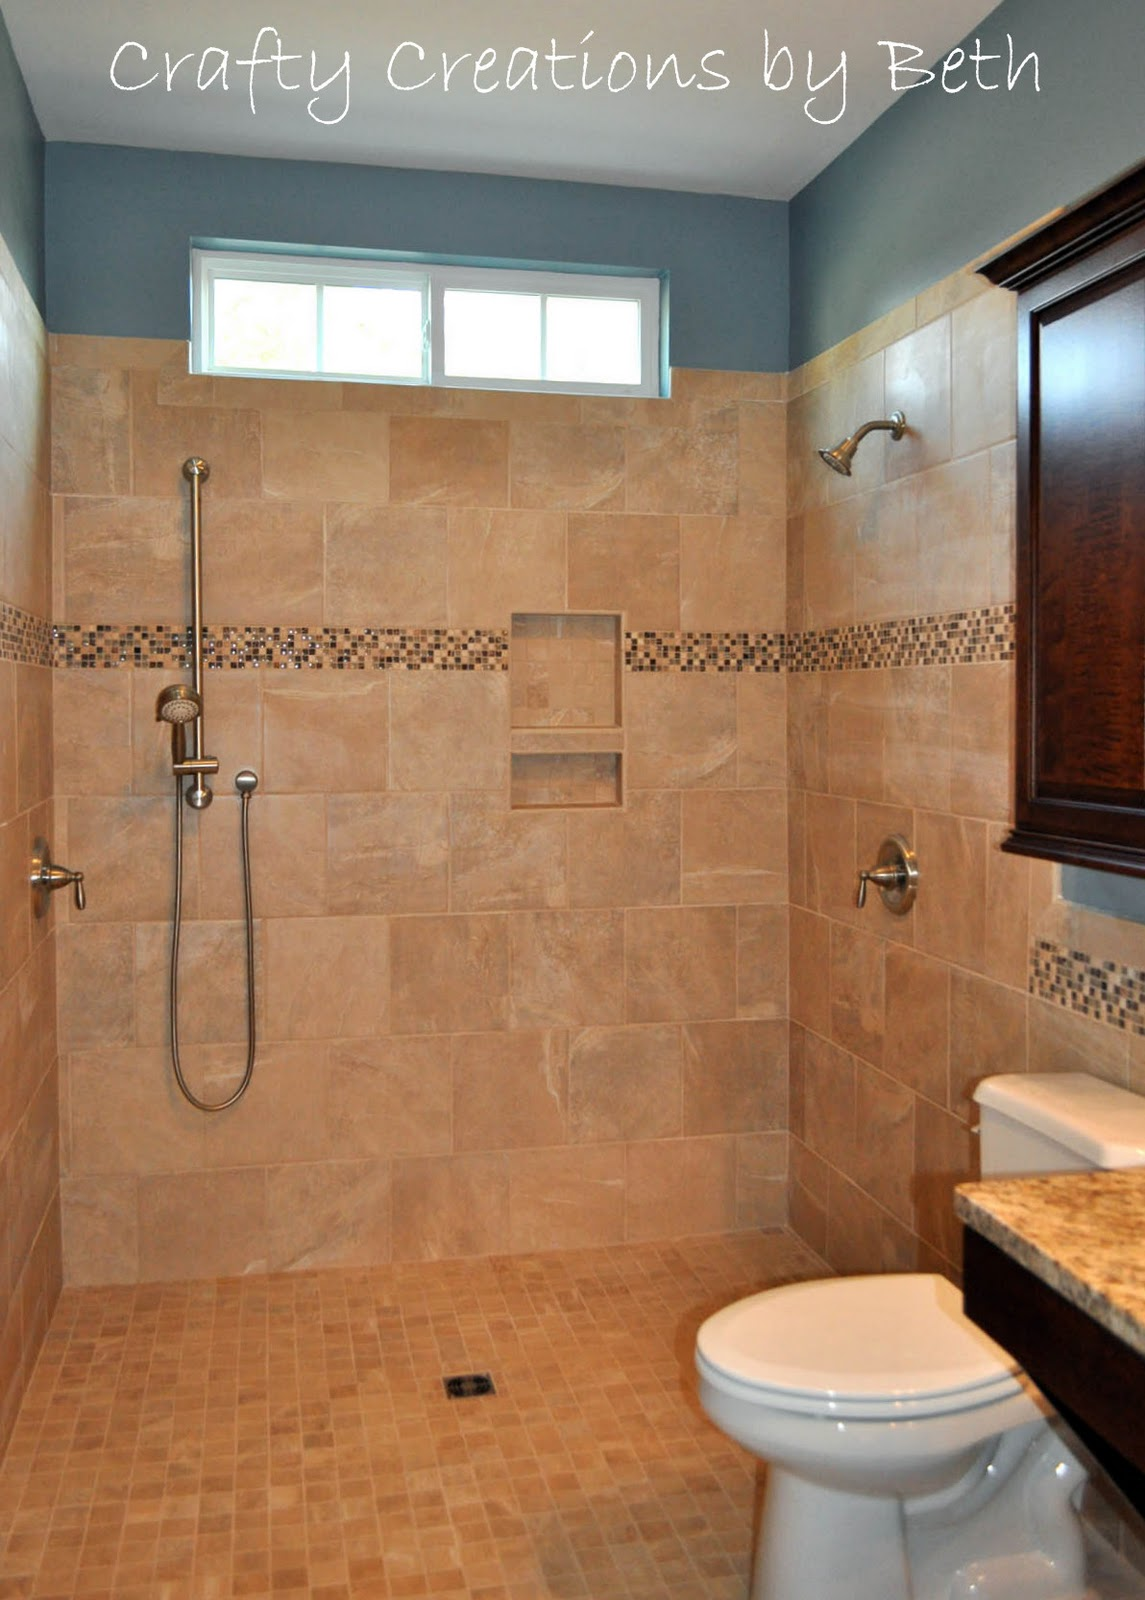 Bathroom Remodeling For Handicap Accessibility : Wheelchair accessible bathroom remodel beyond the screen